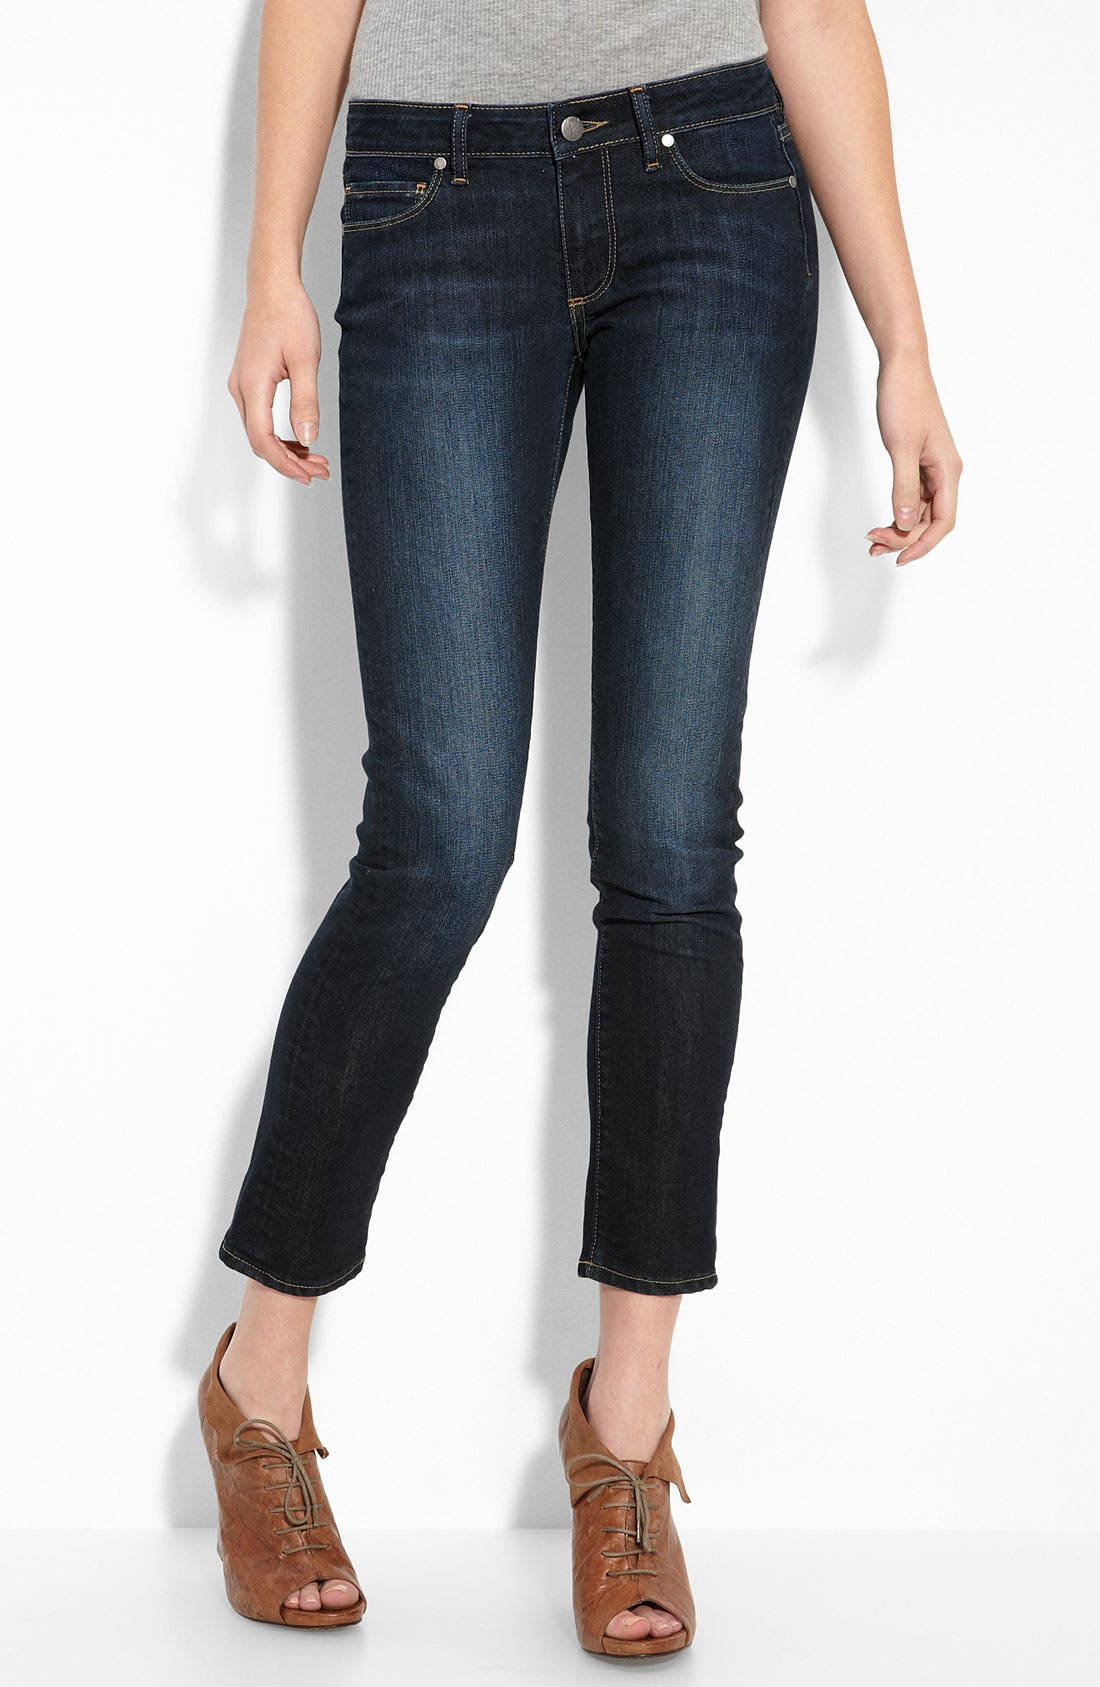 Alternate Image 1 Selected - Paige Denim 'Skyline' Ankle Peg Skinny Stretch Jeans (Super Rebellious Wash)